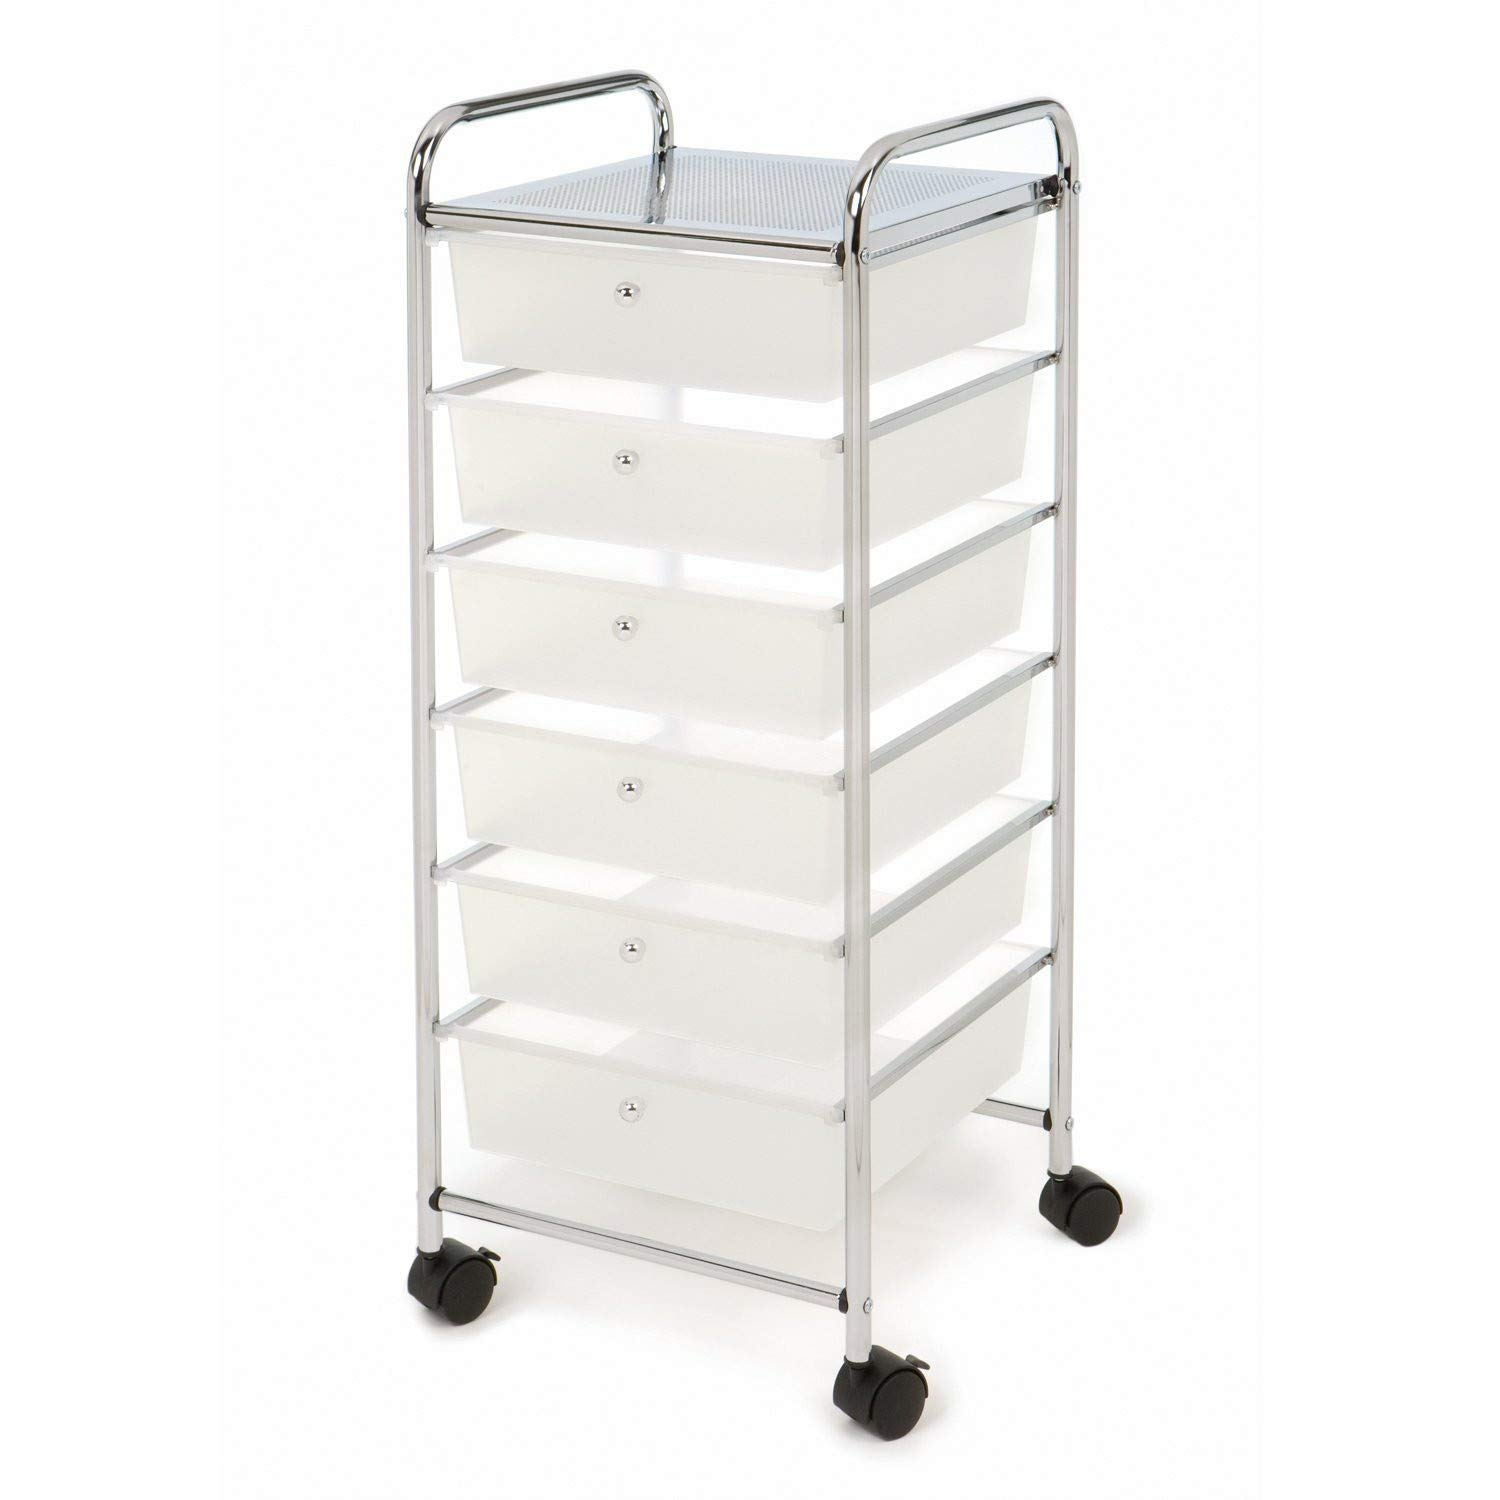 Fine Slim Slide Out Rolling Storage Cart Tower, 6 Tiers Slim Narrow Space Organizer Rack with Wheels for Laundry, Home Organizer Rack,Bathroom, Kitchen & Living Room (White) by Fine